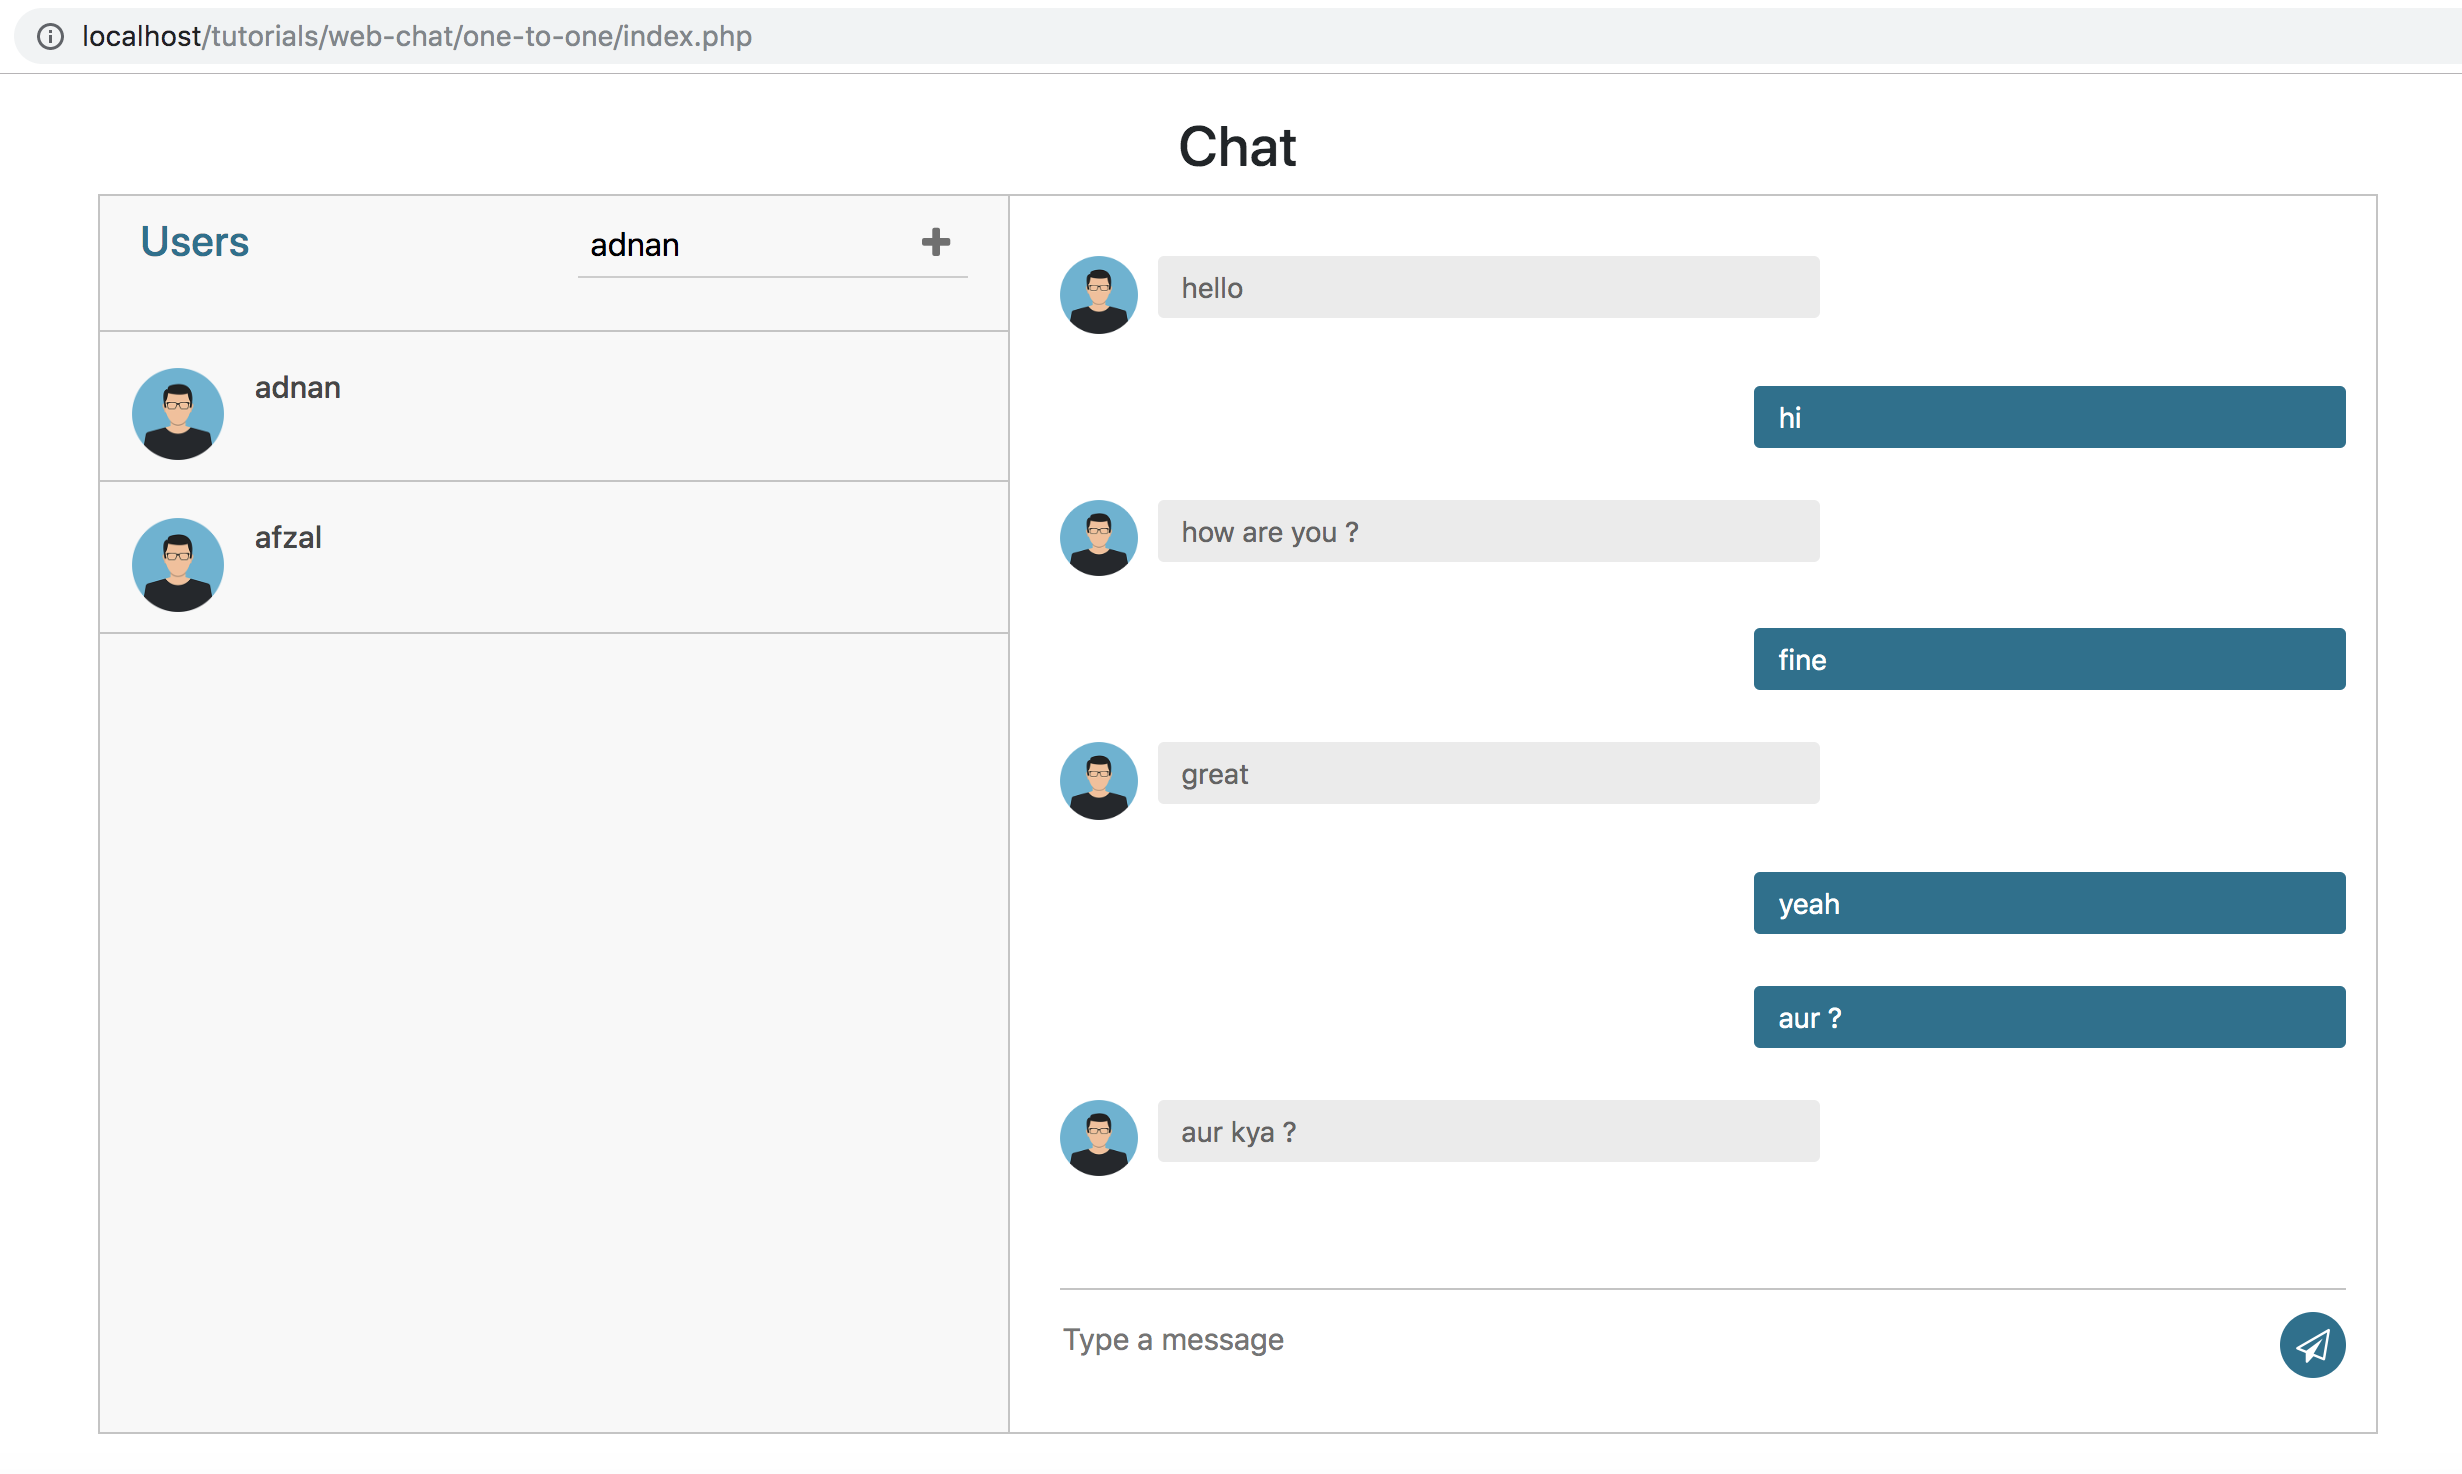 Private user to user chat in Node JS & MySQL